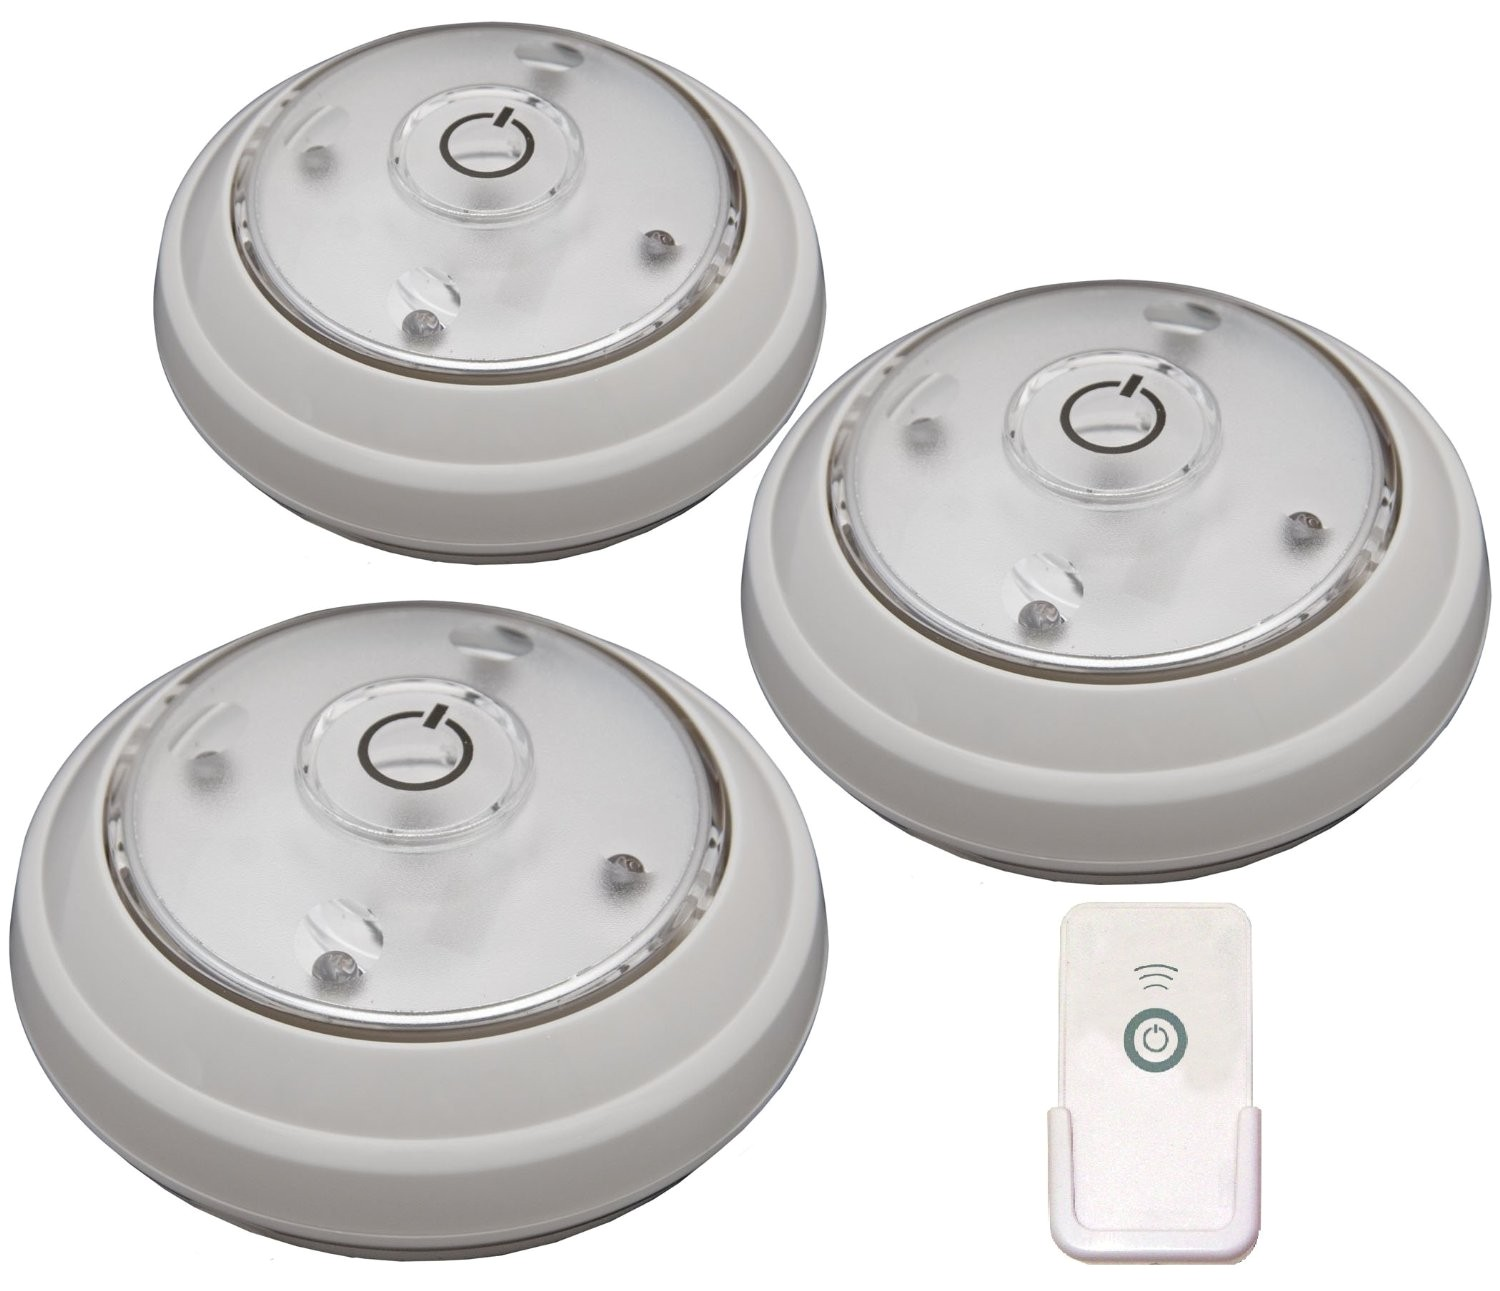 Enviro Satin Nickel Metal Led Puck Light 3 Pack I: Led Puck Lights At Home Depot